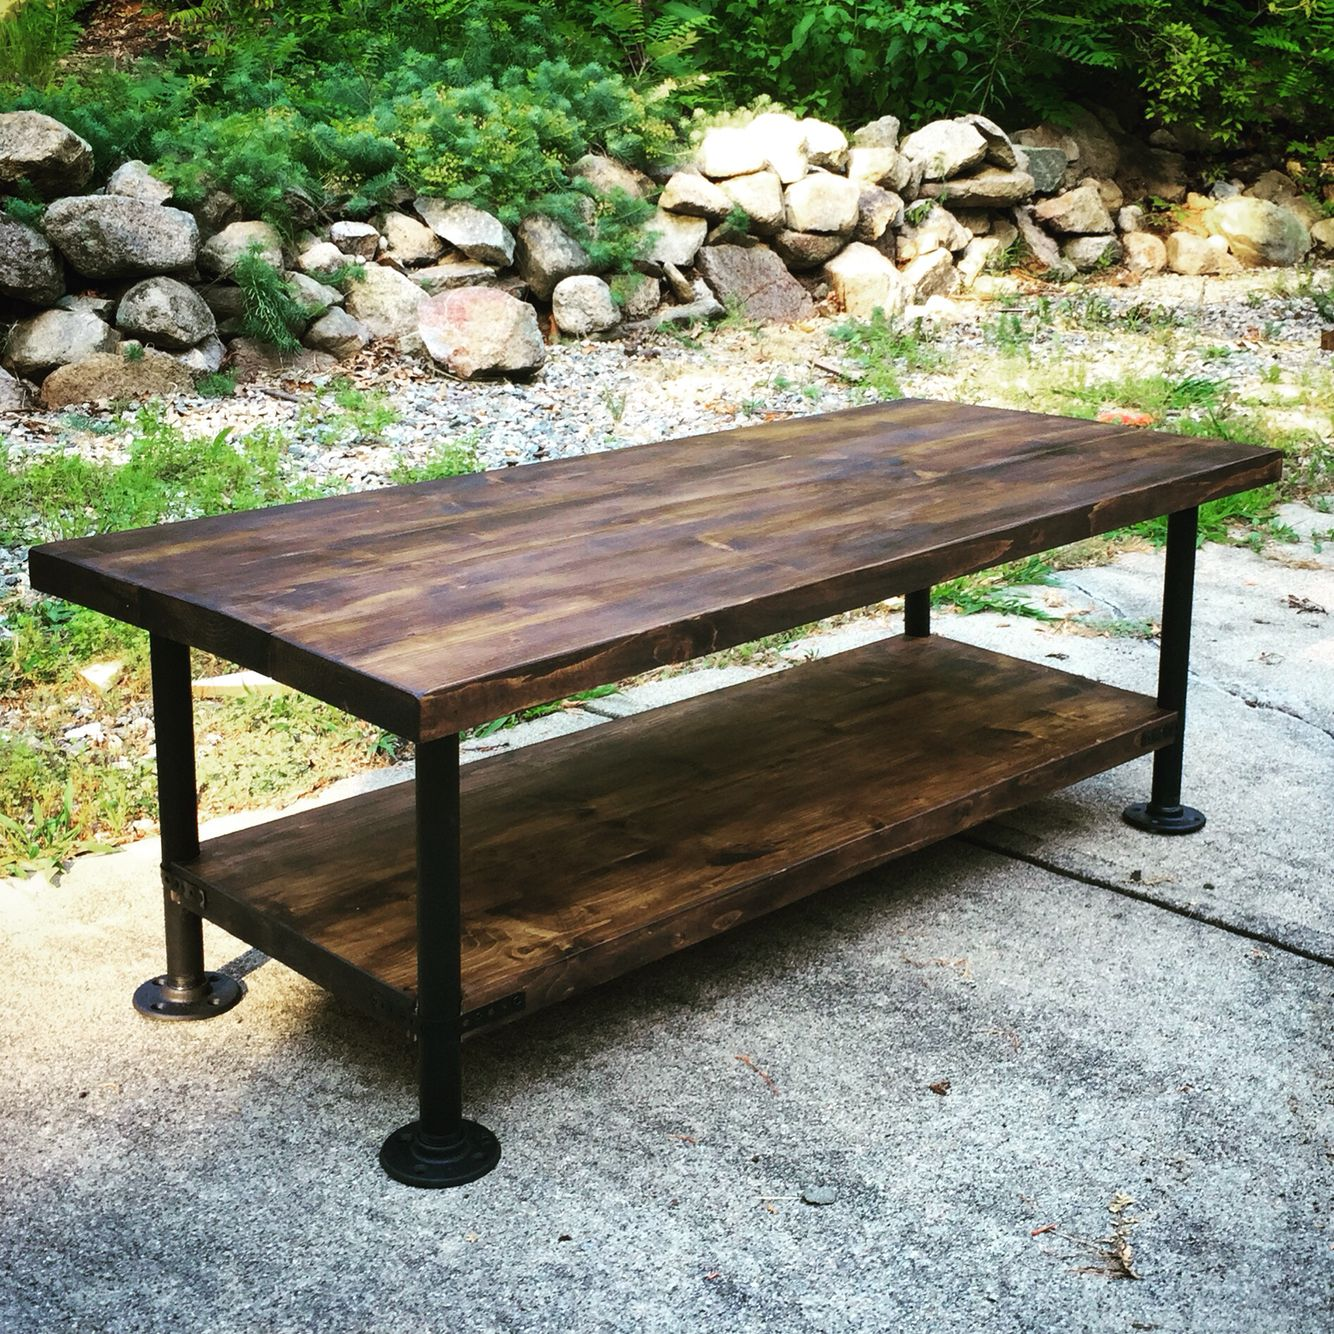 Wohnzimmer Regal Industrial Industrial Style Wood Coffee Table With Steel Pipe Legs